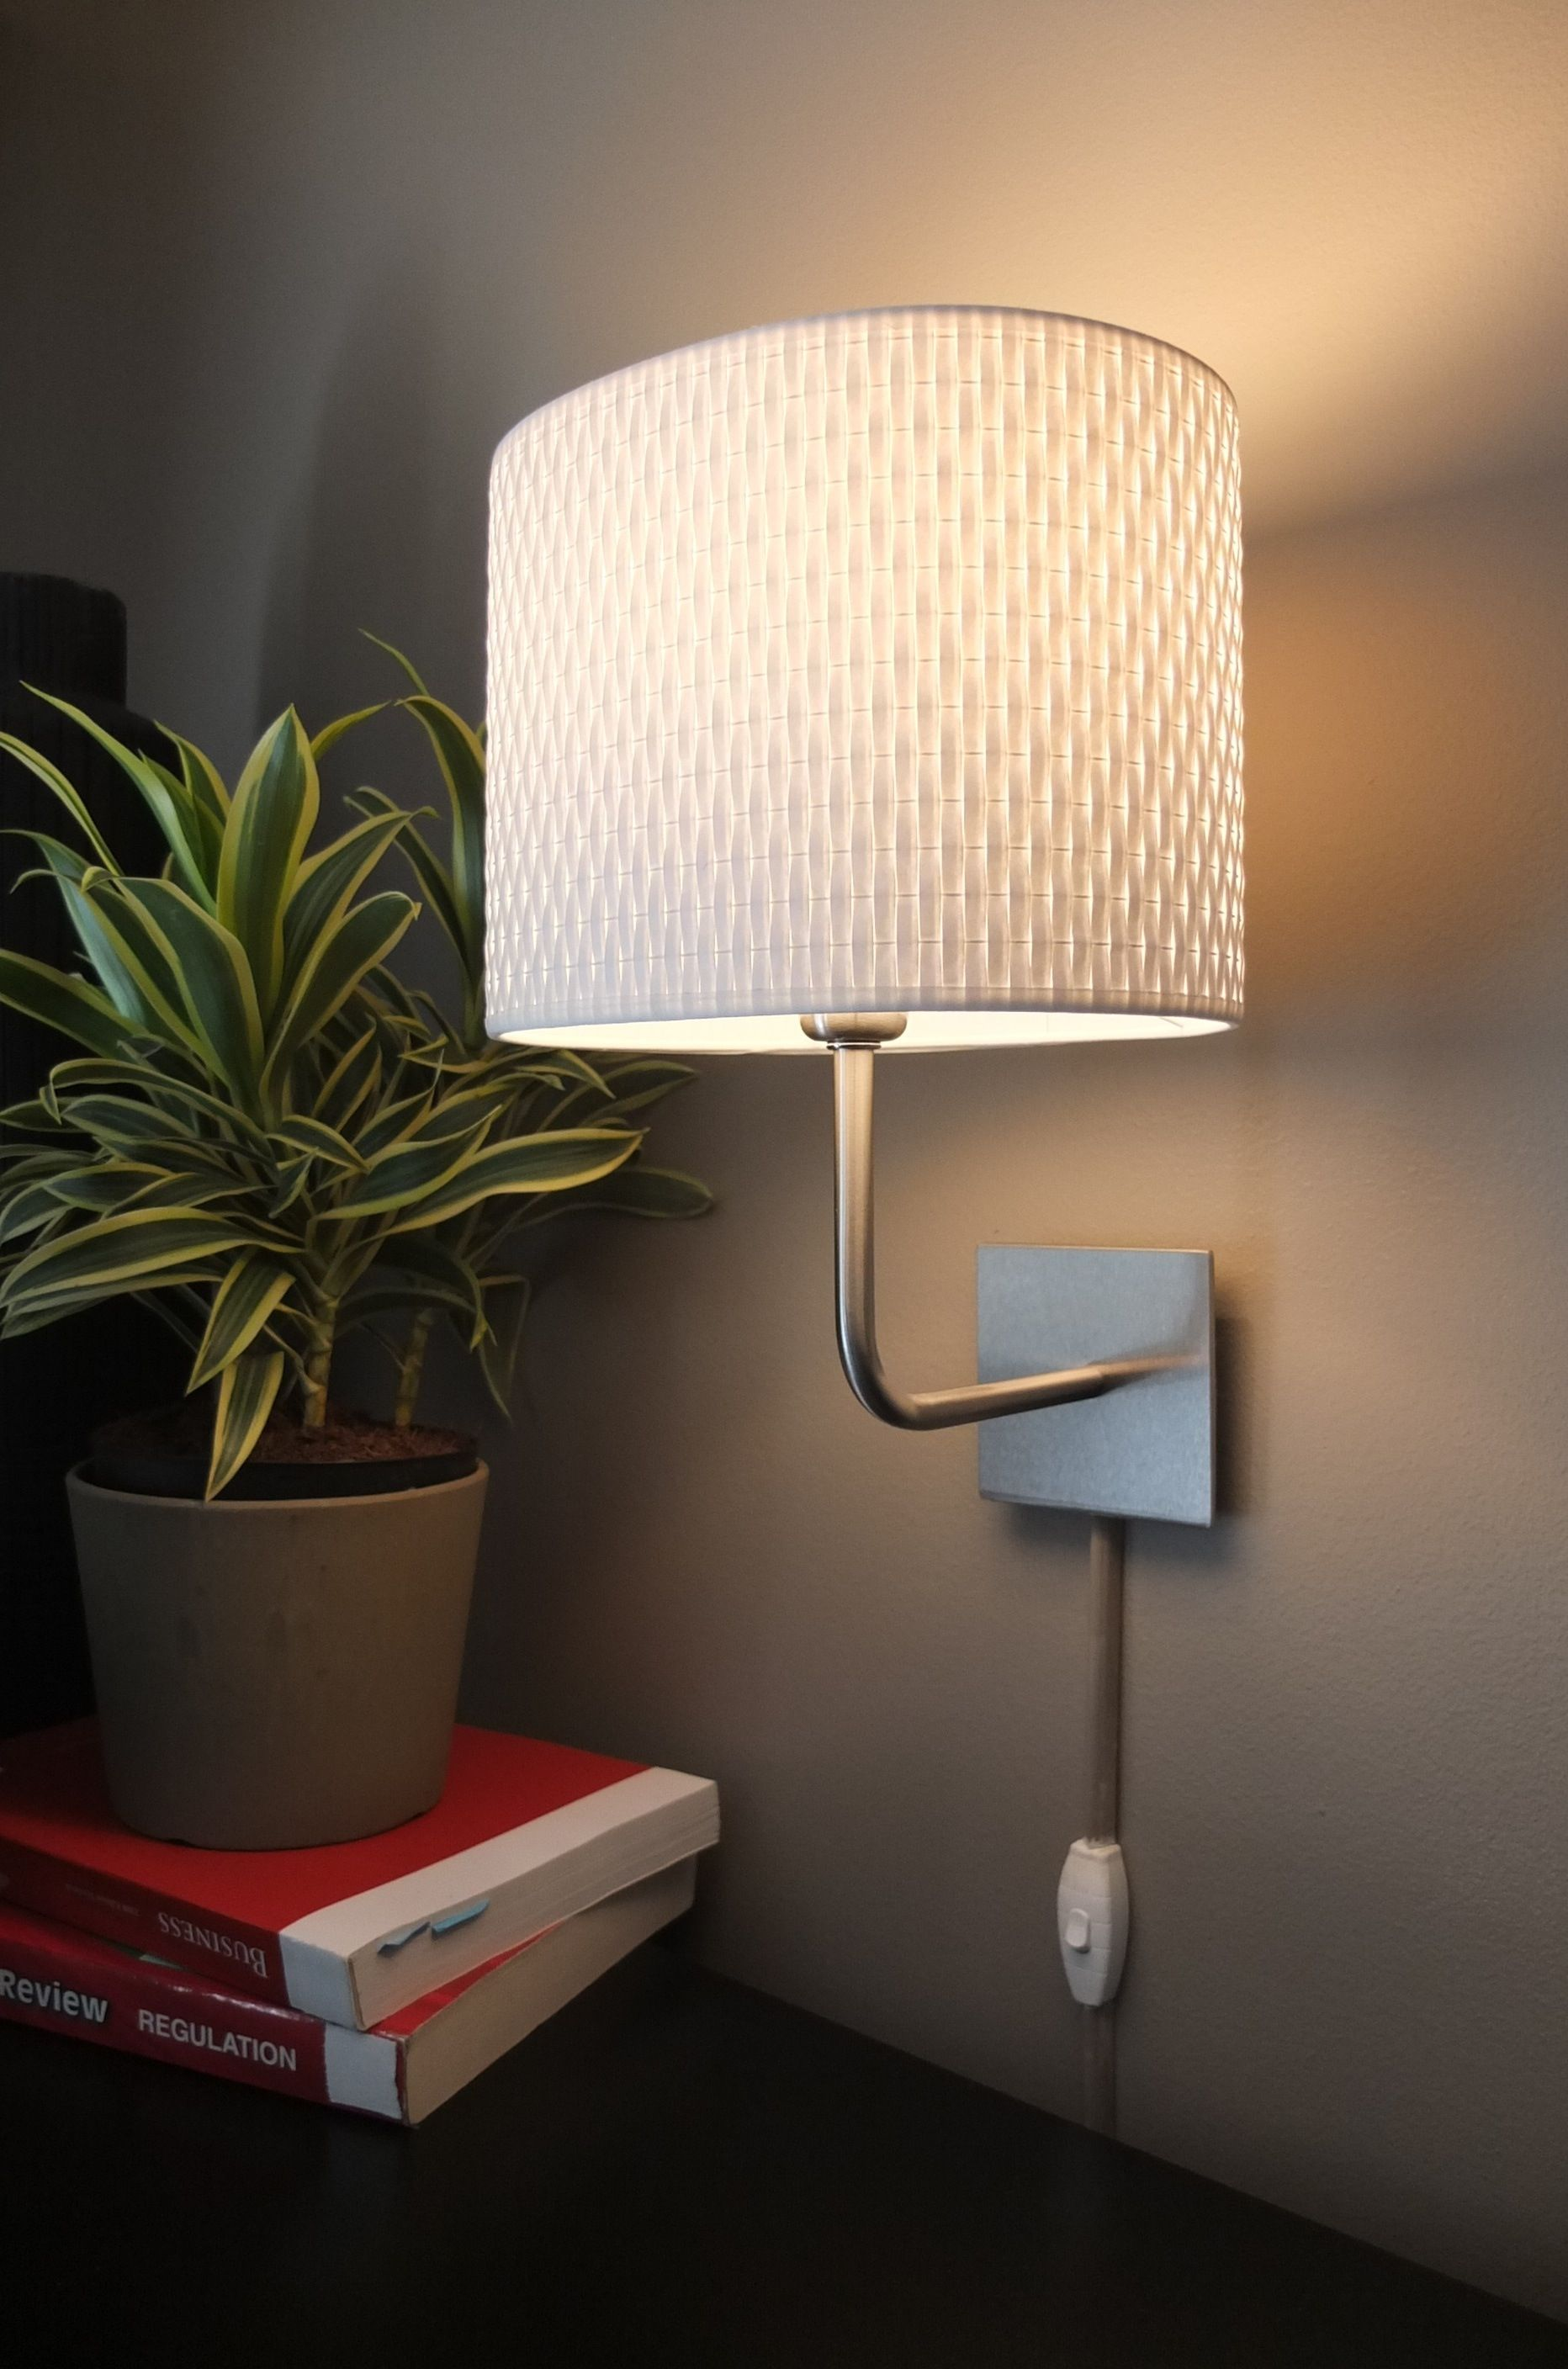 Wall Lamps For Living Room Wall Mounted Ikea Lamps Are An Easy Way To Add Light In A